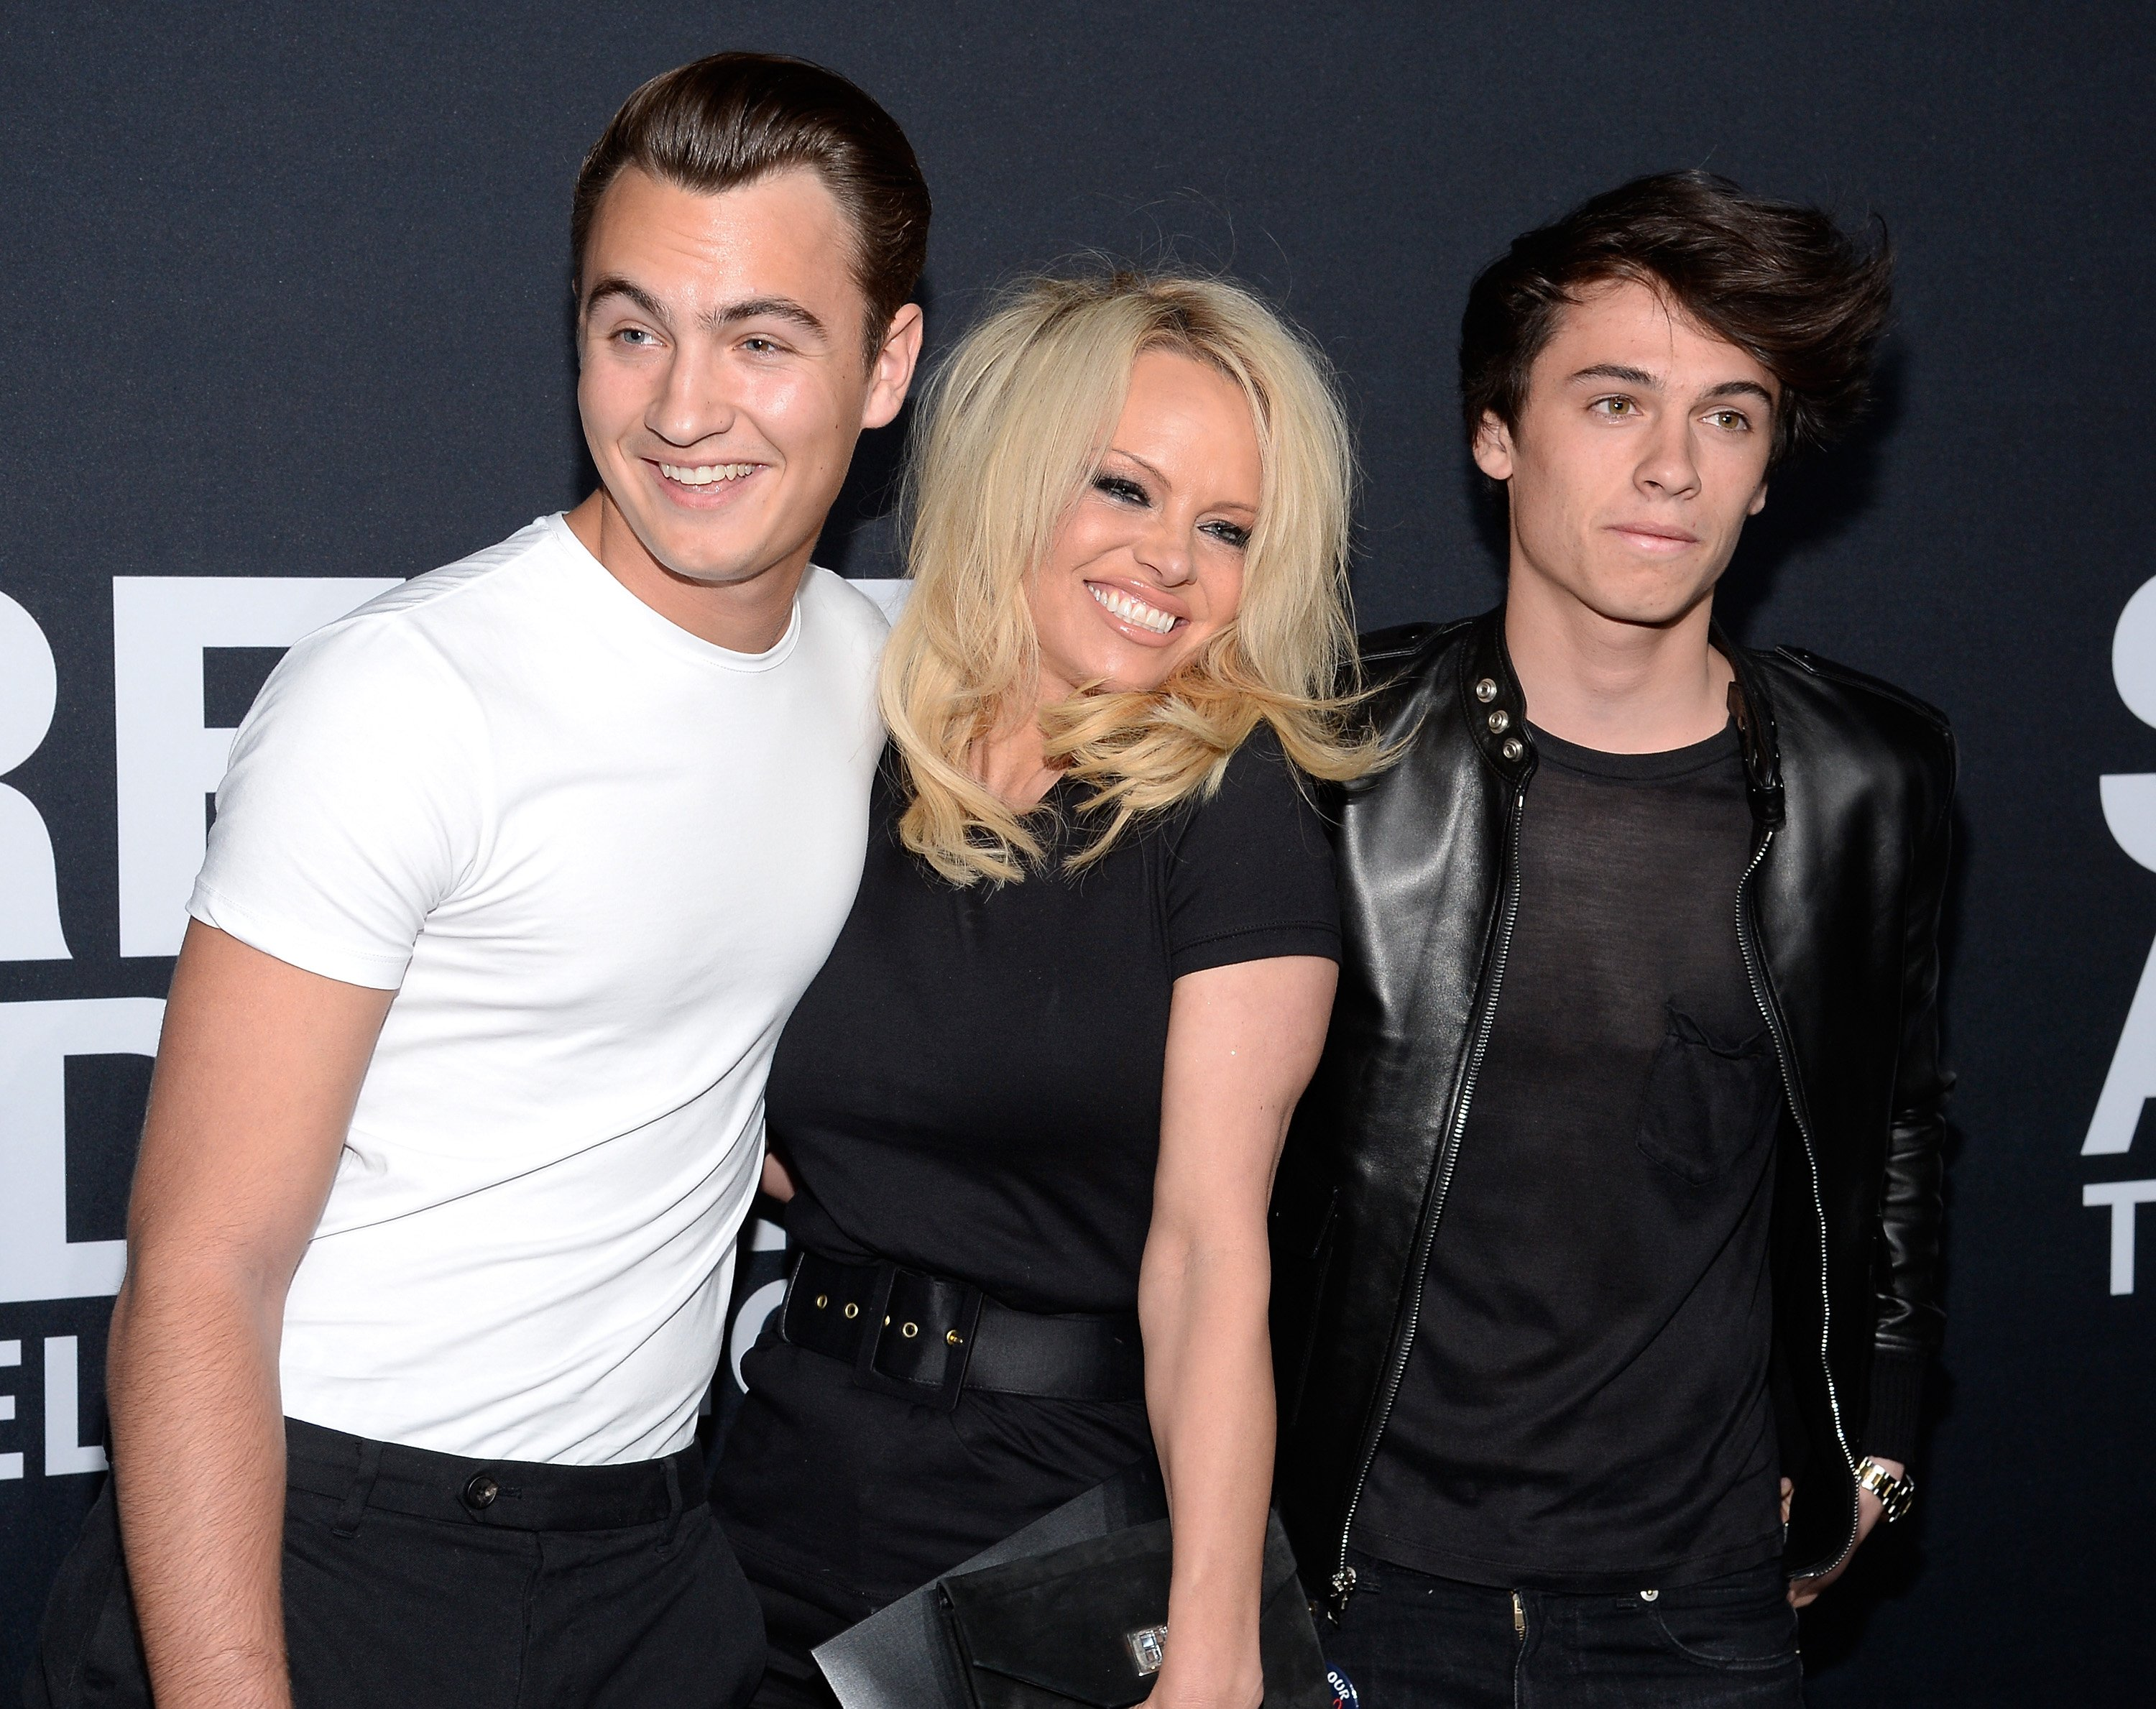 Pamela Anderson (center) and her sons Brandon Lee (L) and Dylan Lee attend the Saint Laurent show at The Hollywood Palladium on February 10, 2016, in Los Angeles, California. | Source: Getty Images.